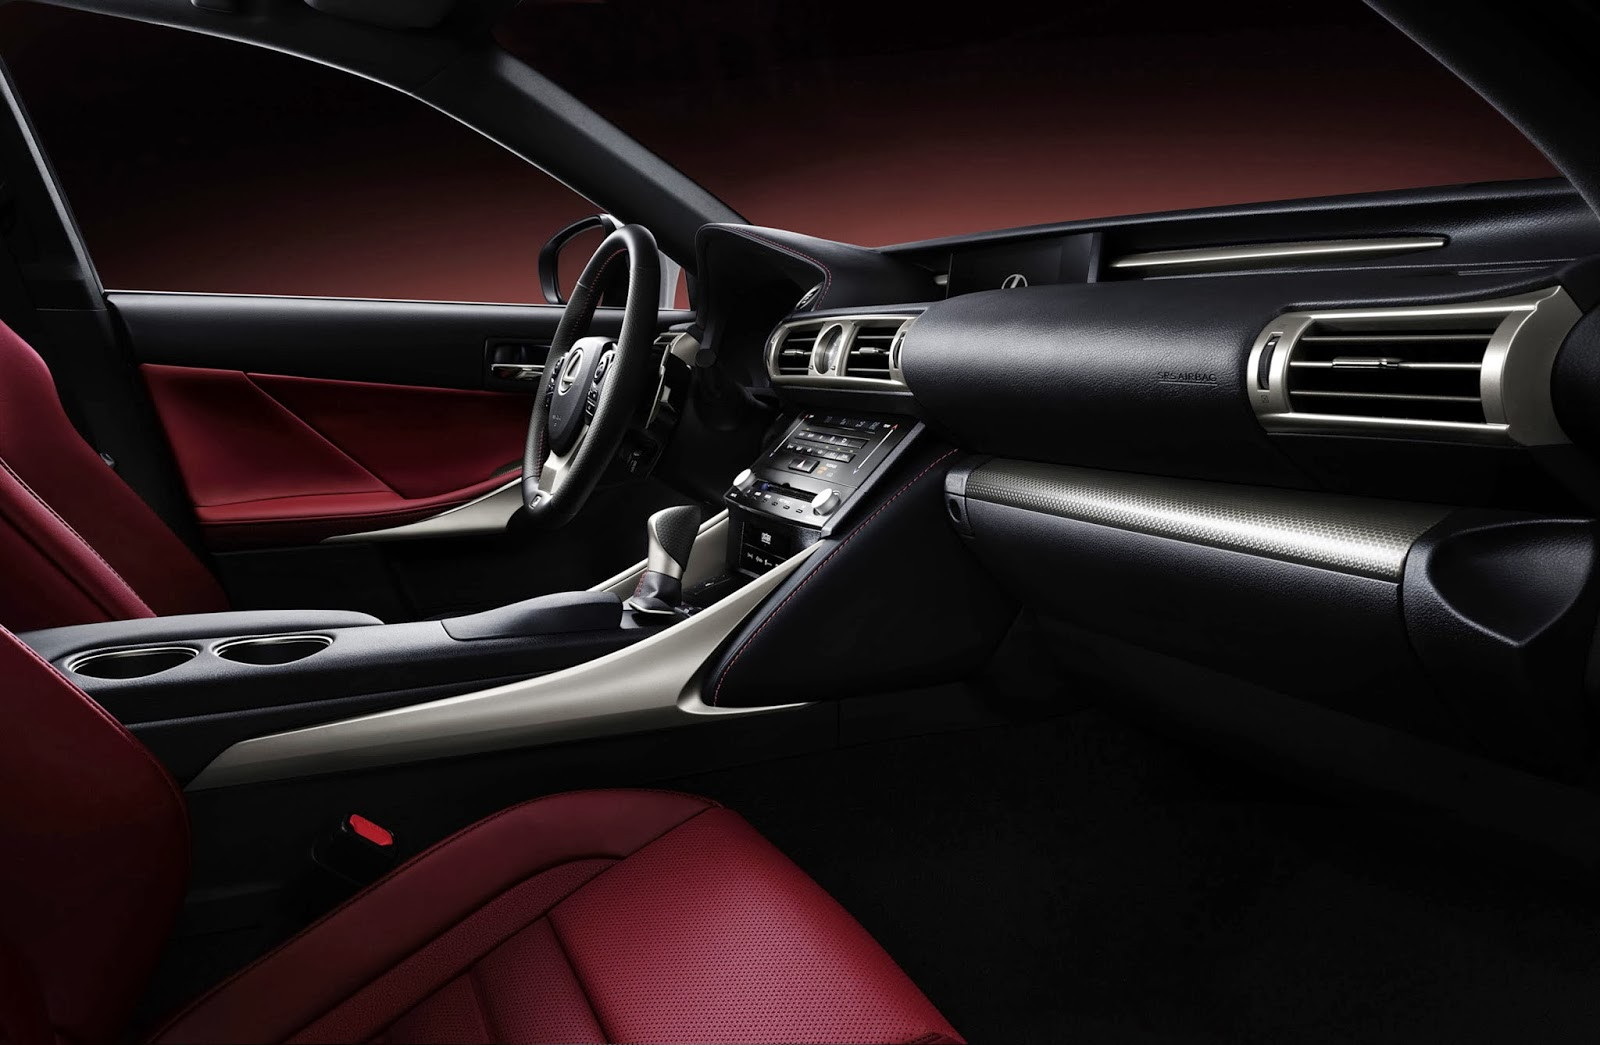 Interior view of the 2014 Lexus IS 350 F-Sport